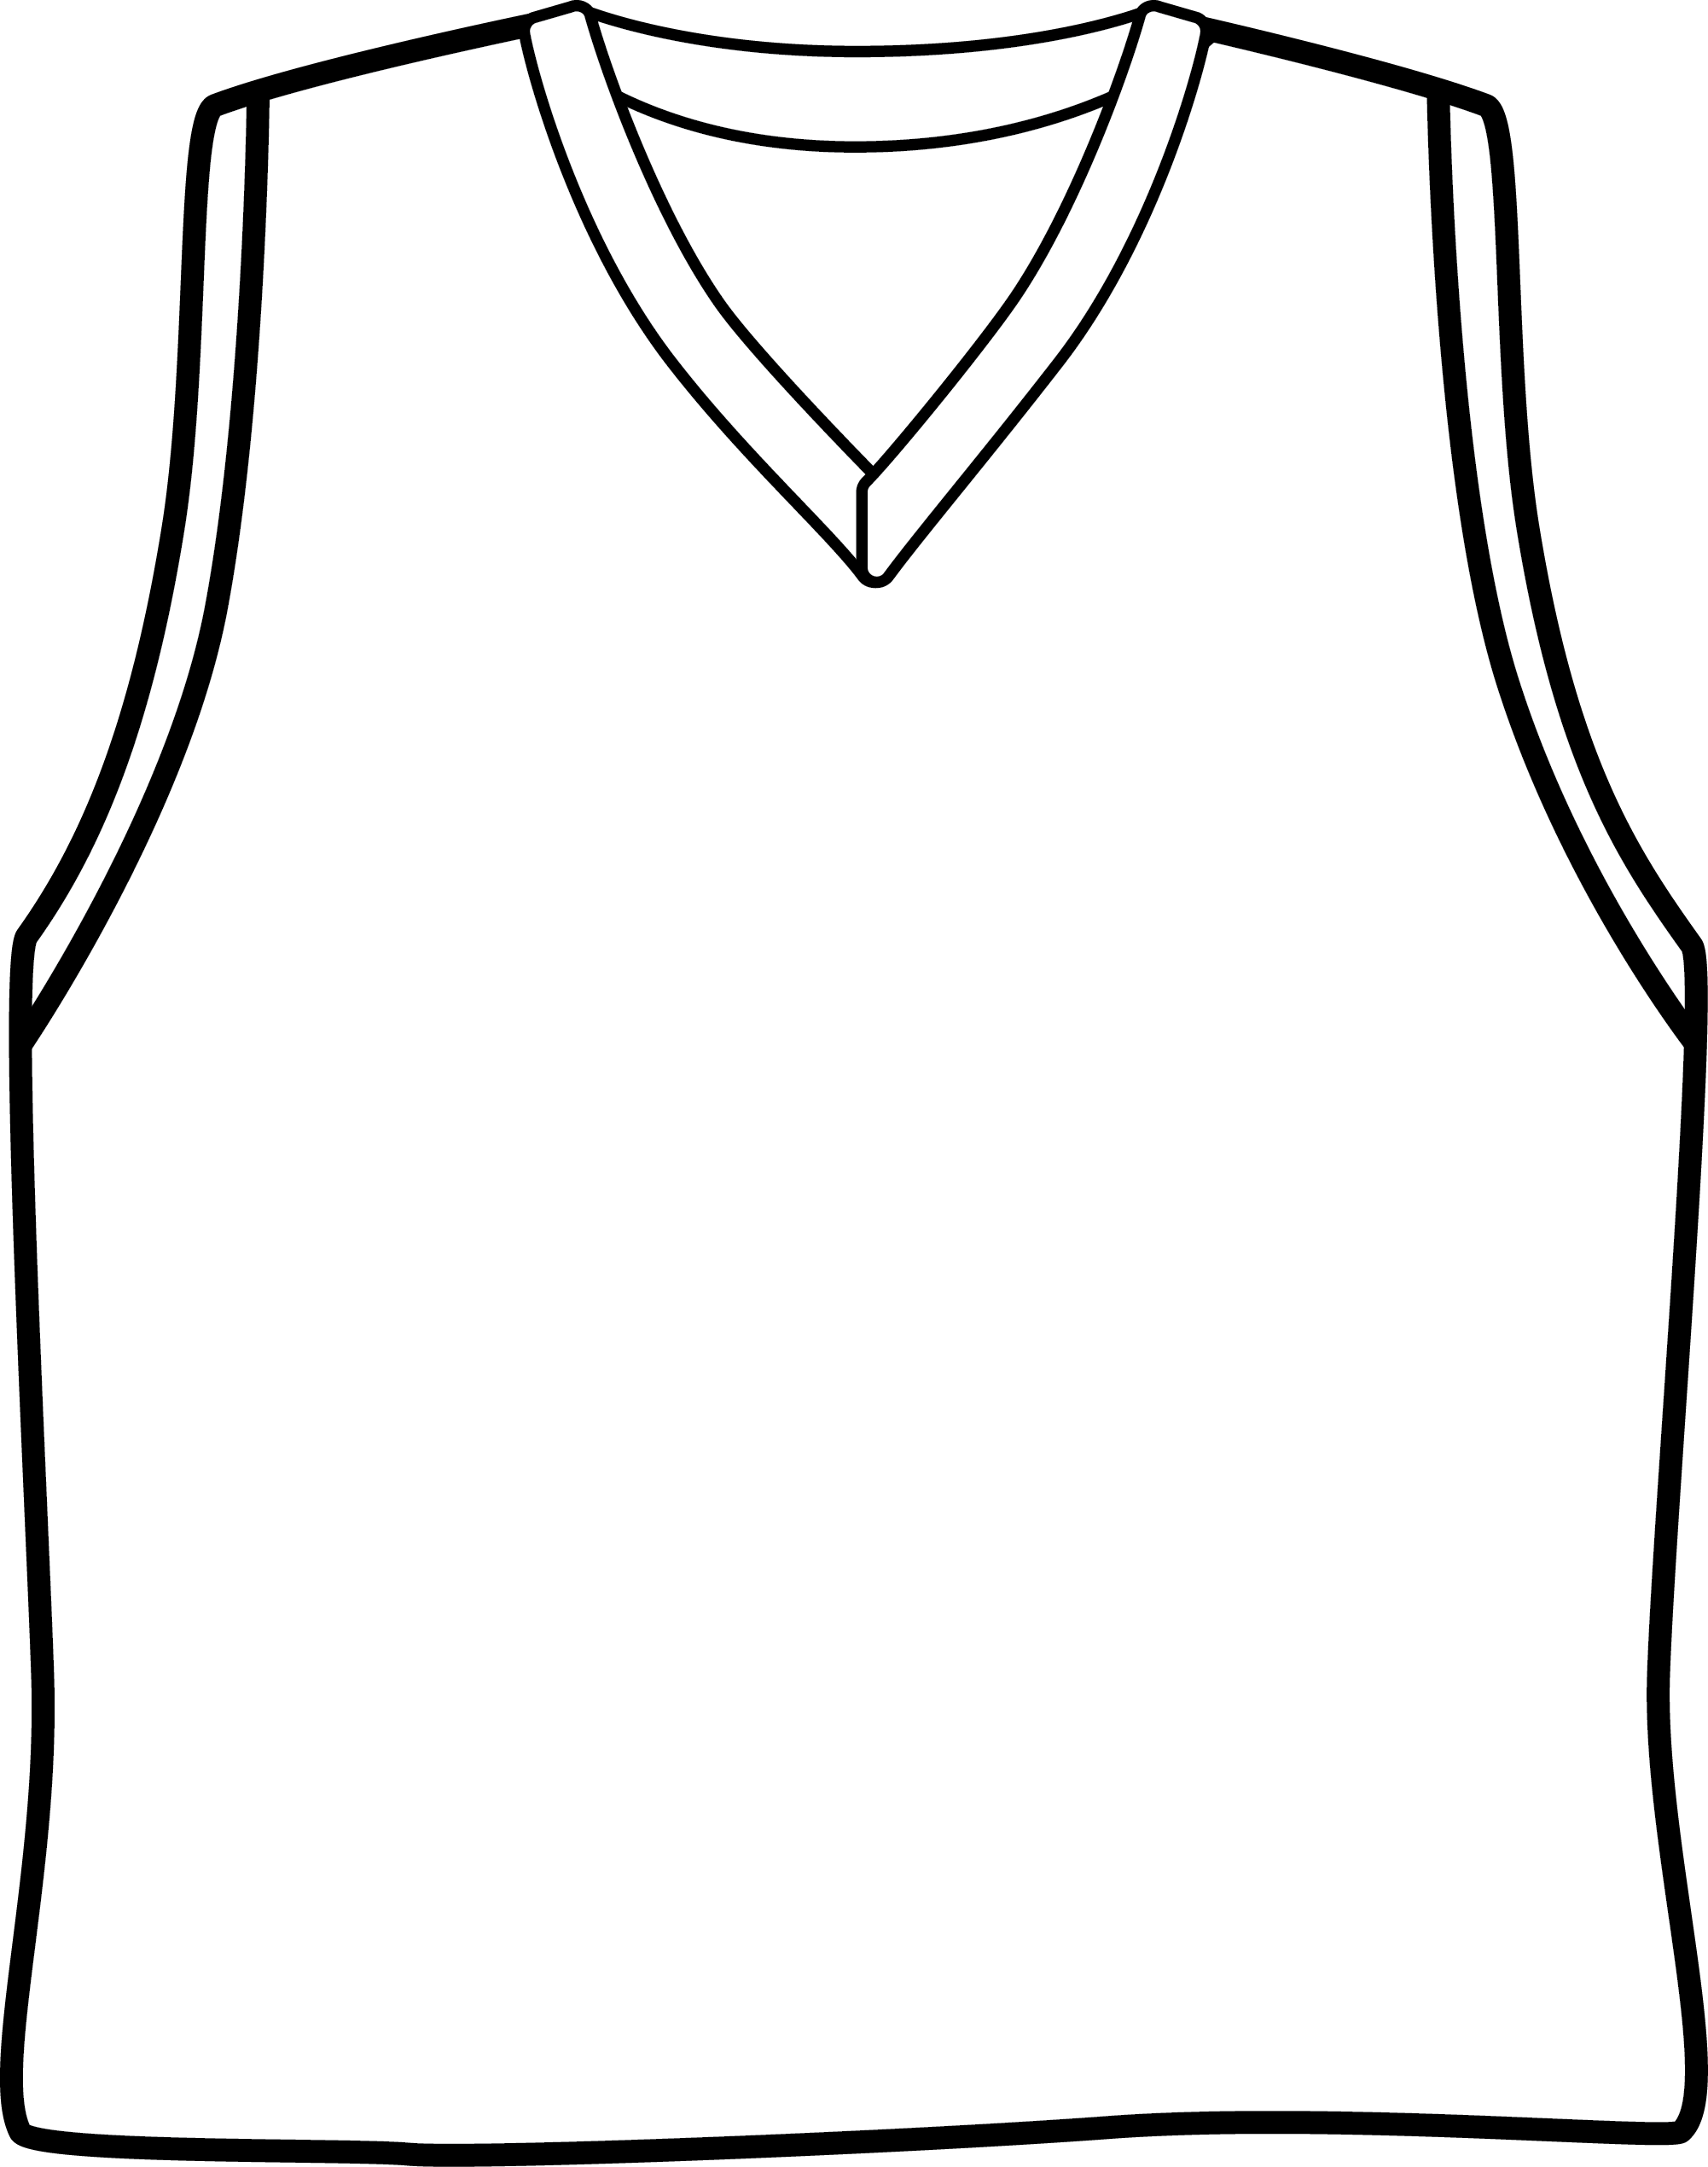 Blank Basketball Jersey Template